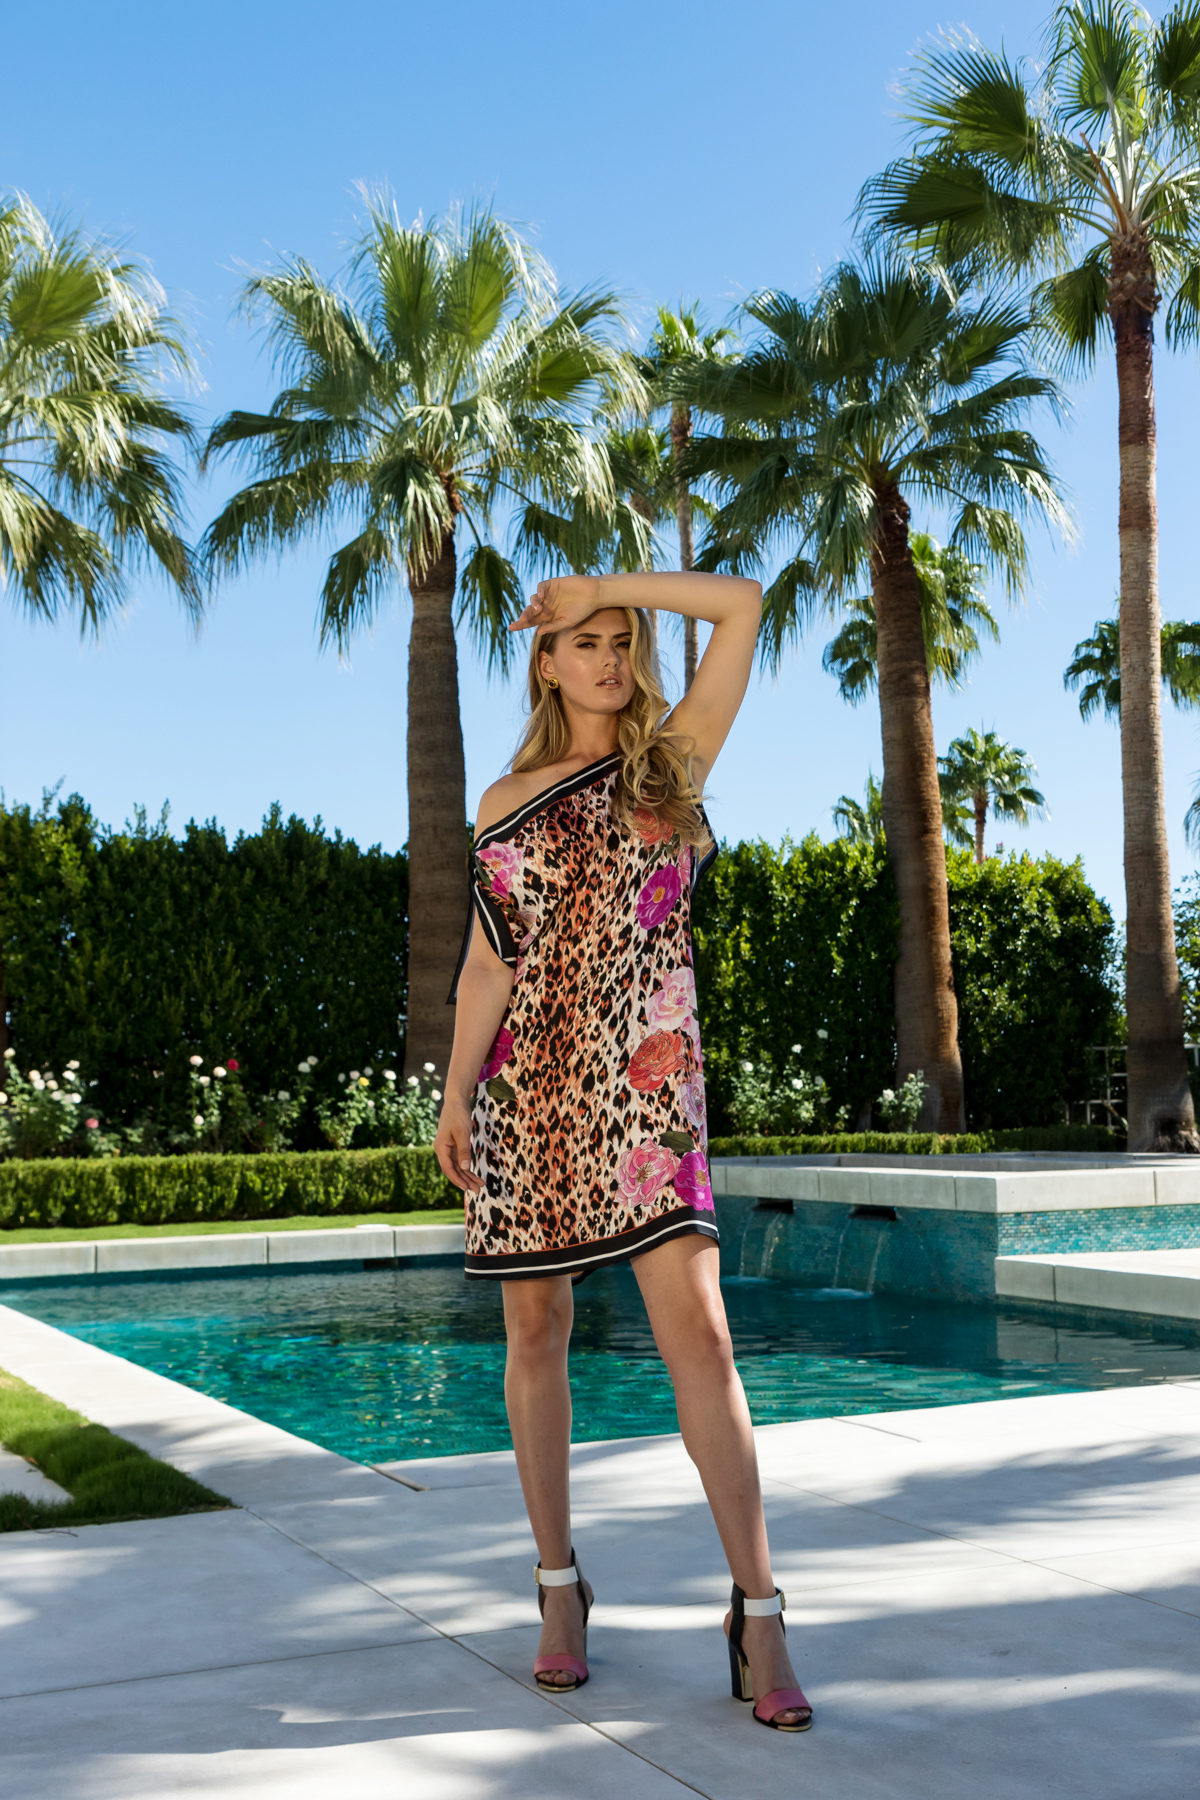 AMANDA REVERSIBLE SILK SCARF TUNIC IN ROSE LEOPARD / OPULENCE LTD ED PRINTS